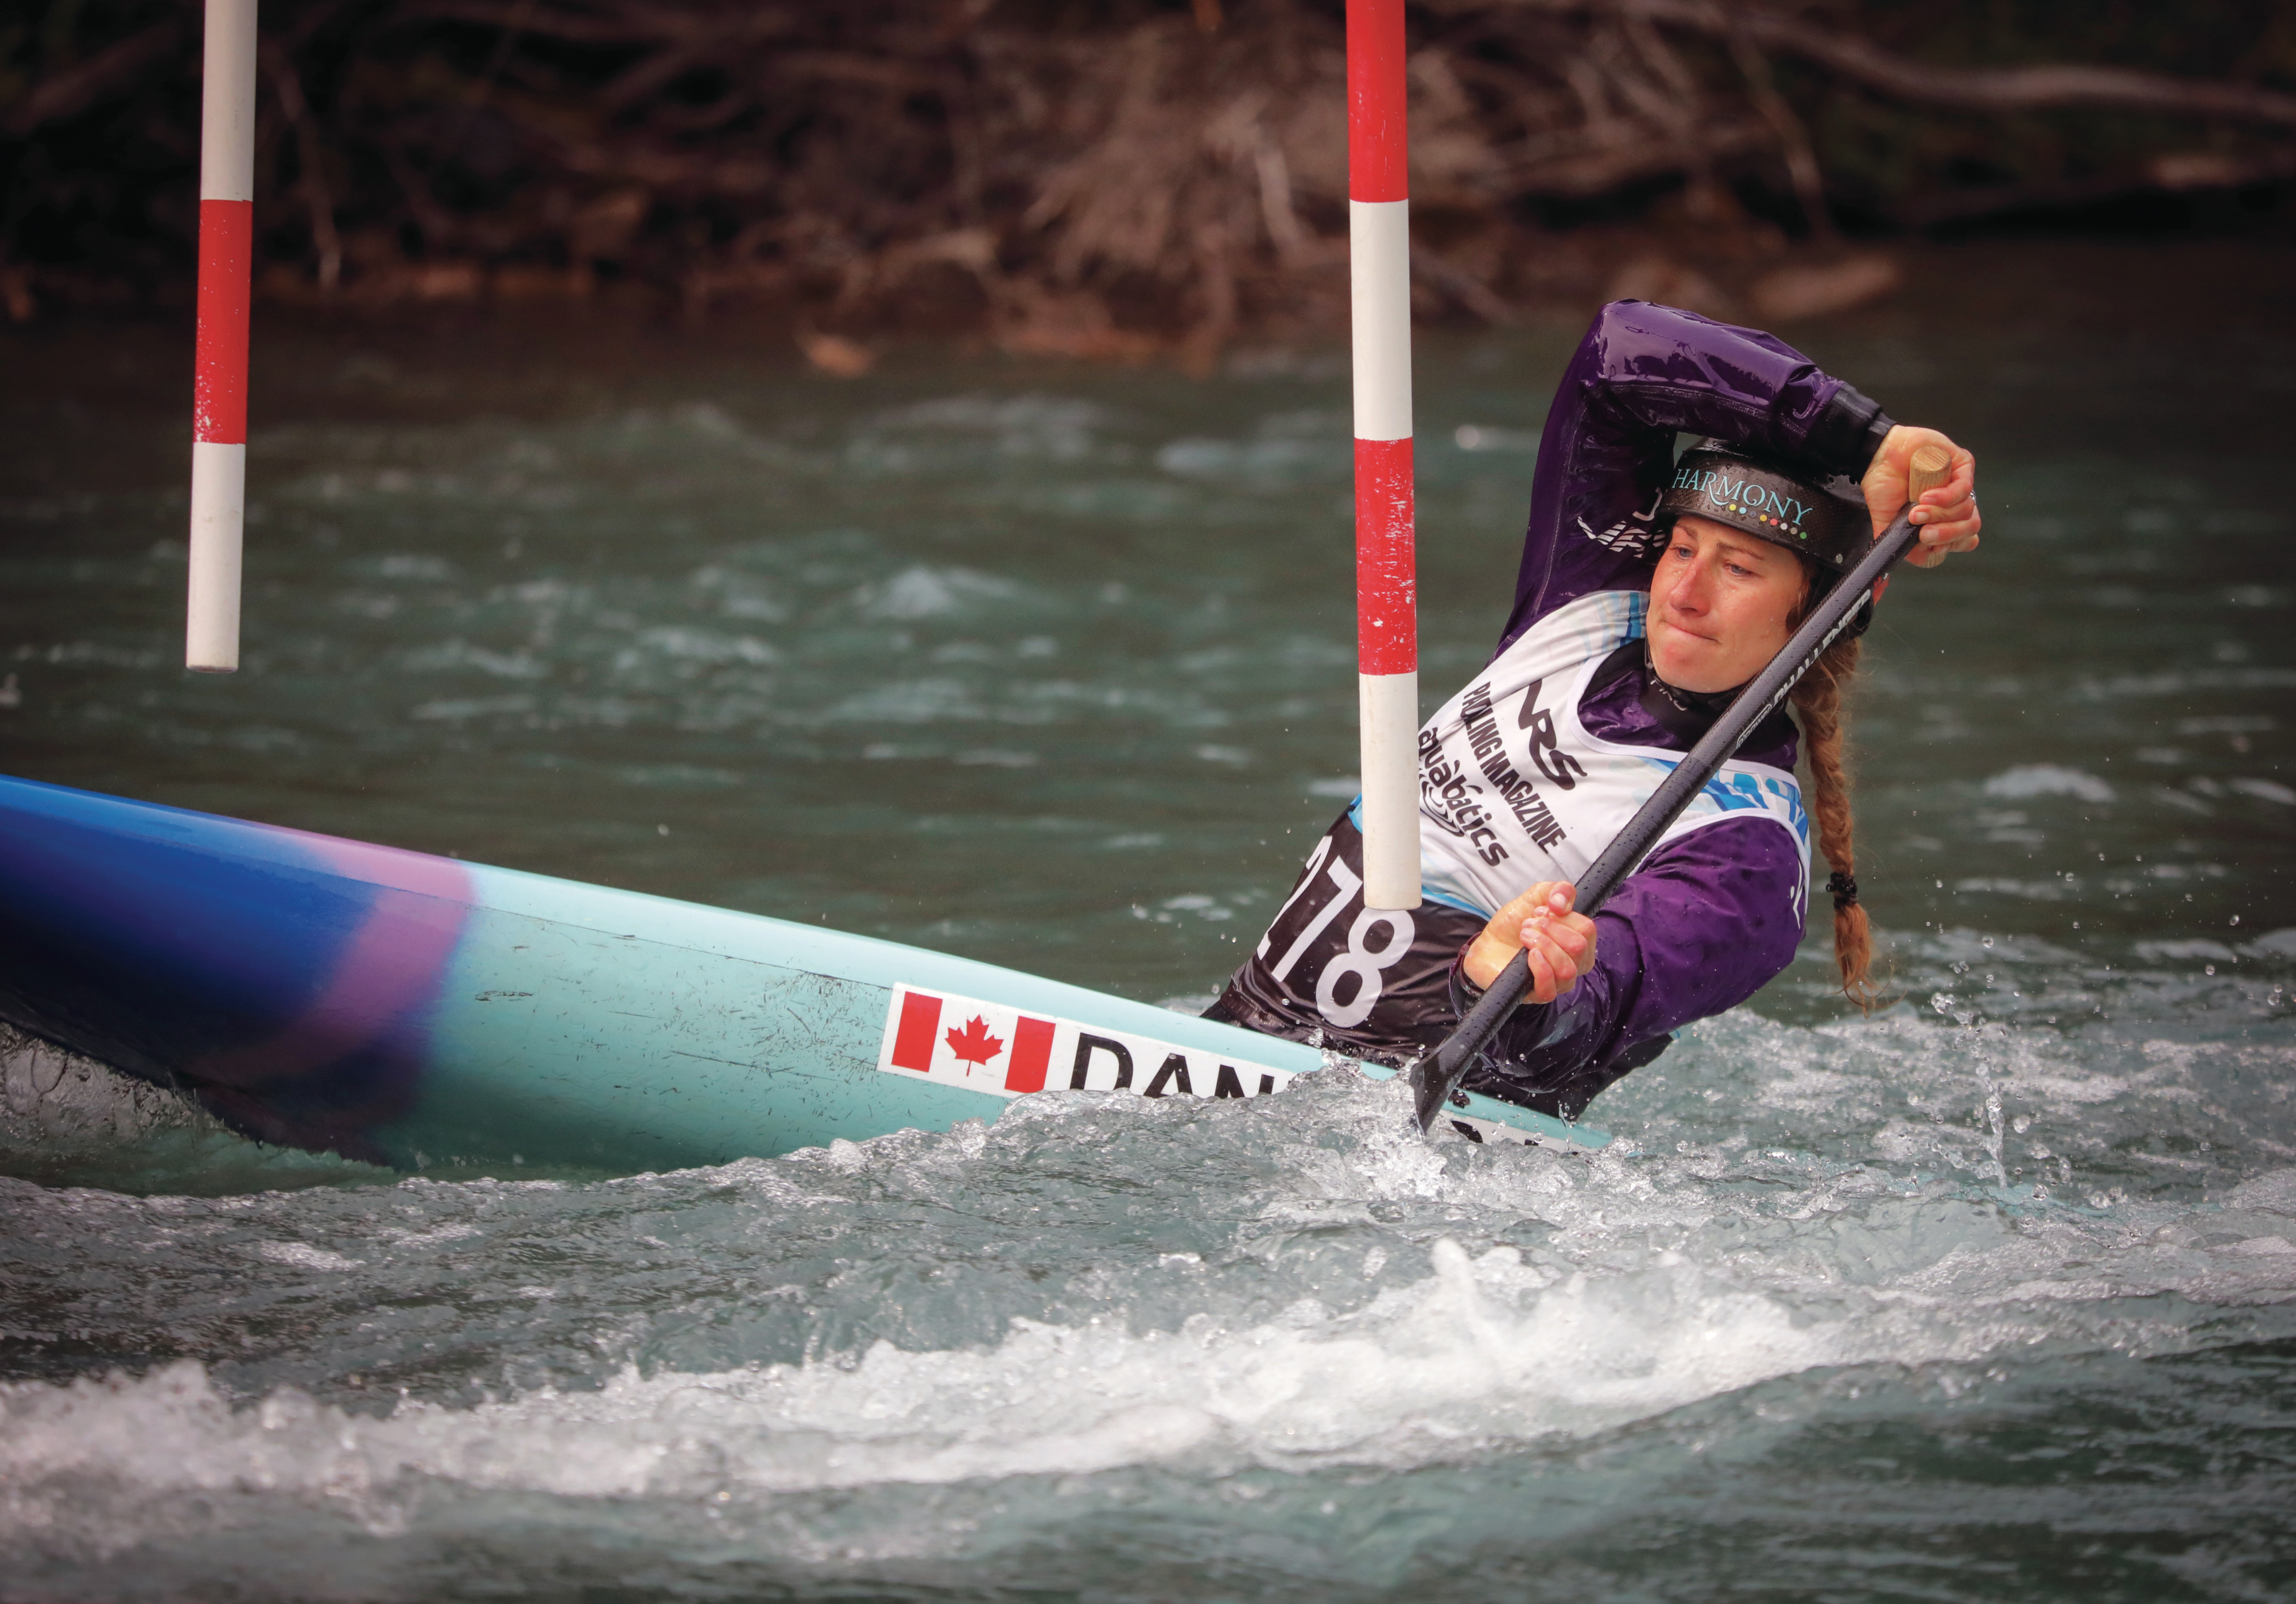 Haley Daniels competes on Sept. 13, 2020, during the Alberta slalom canoe kayak championships in Kananaskis. (Photograph by Leah Hennel)